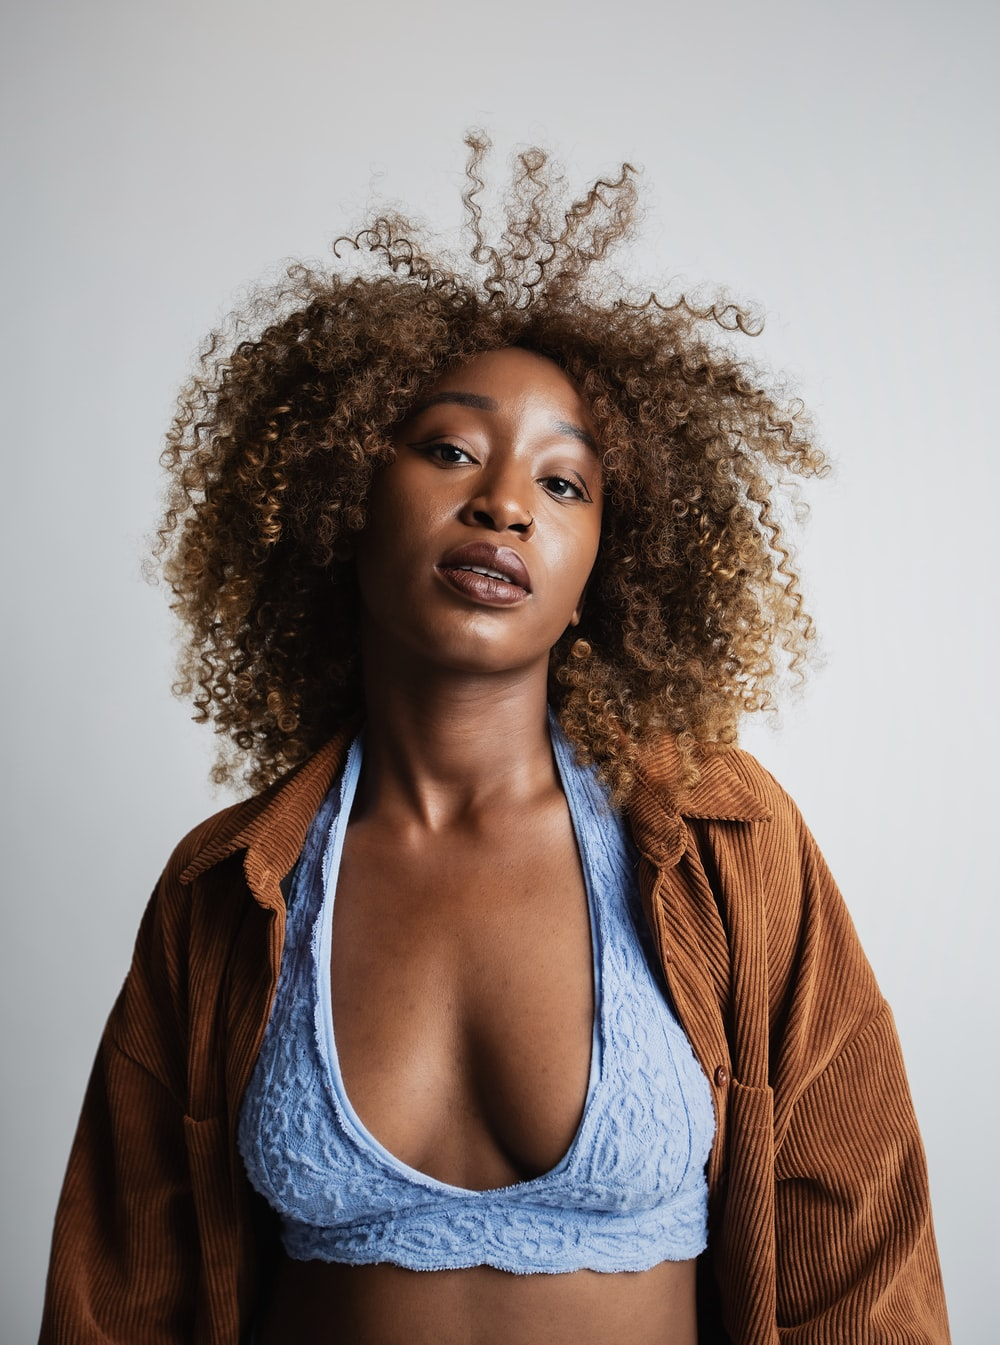 woman wearing blue lace bralette and brown corduroy cardigan